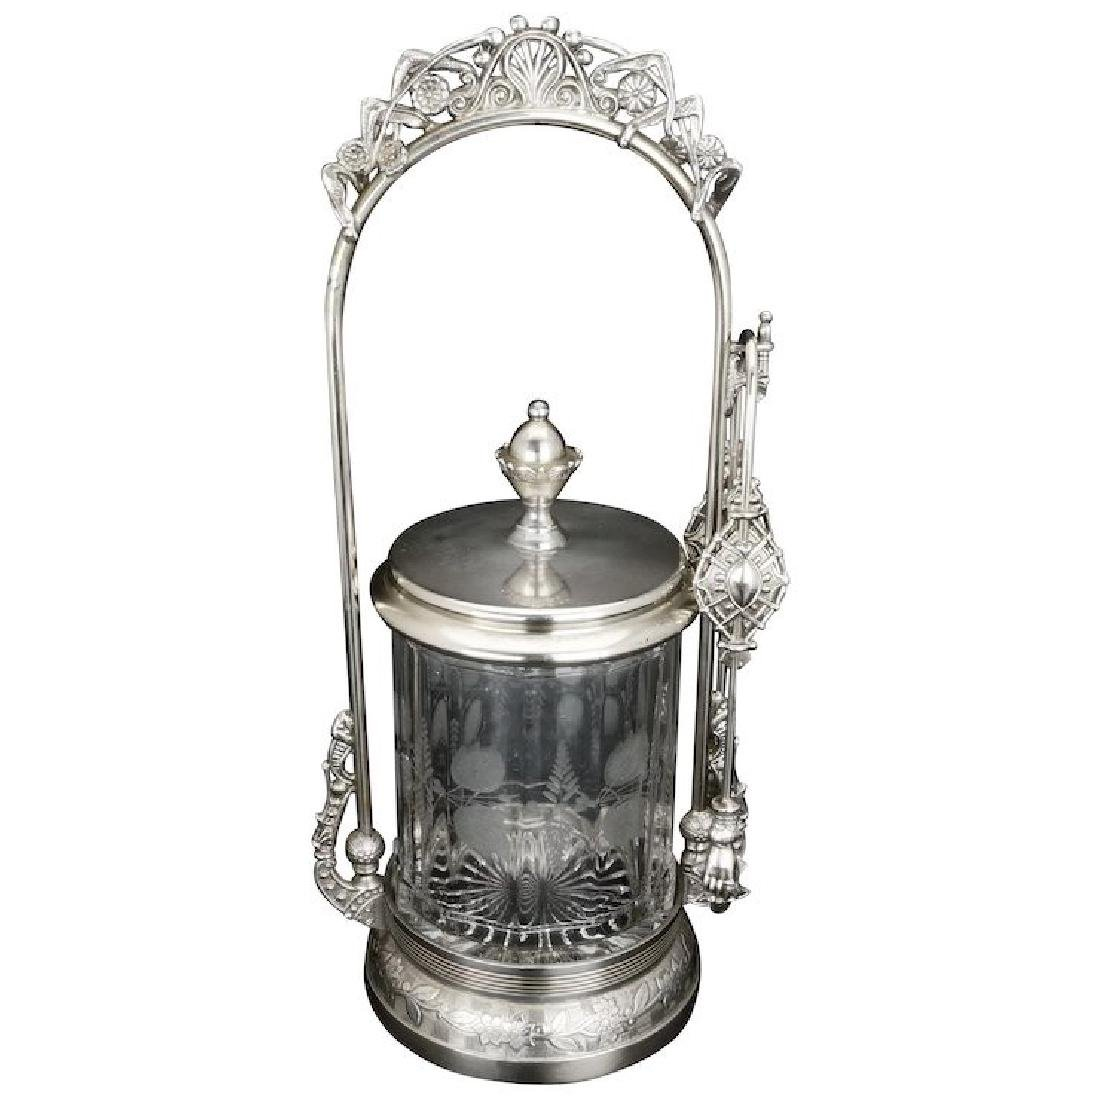 Victorian silver plate pickle castor by Wilcox late